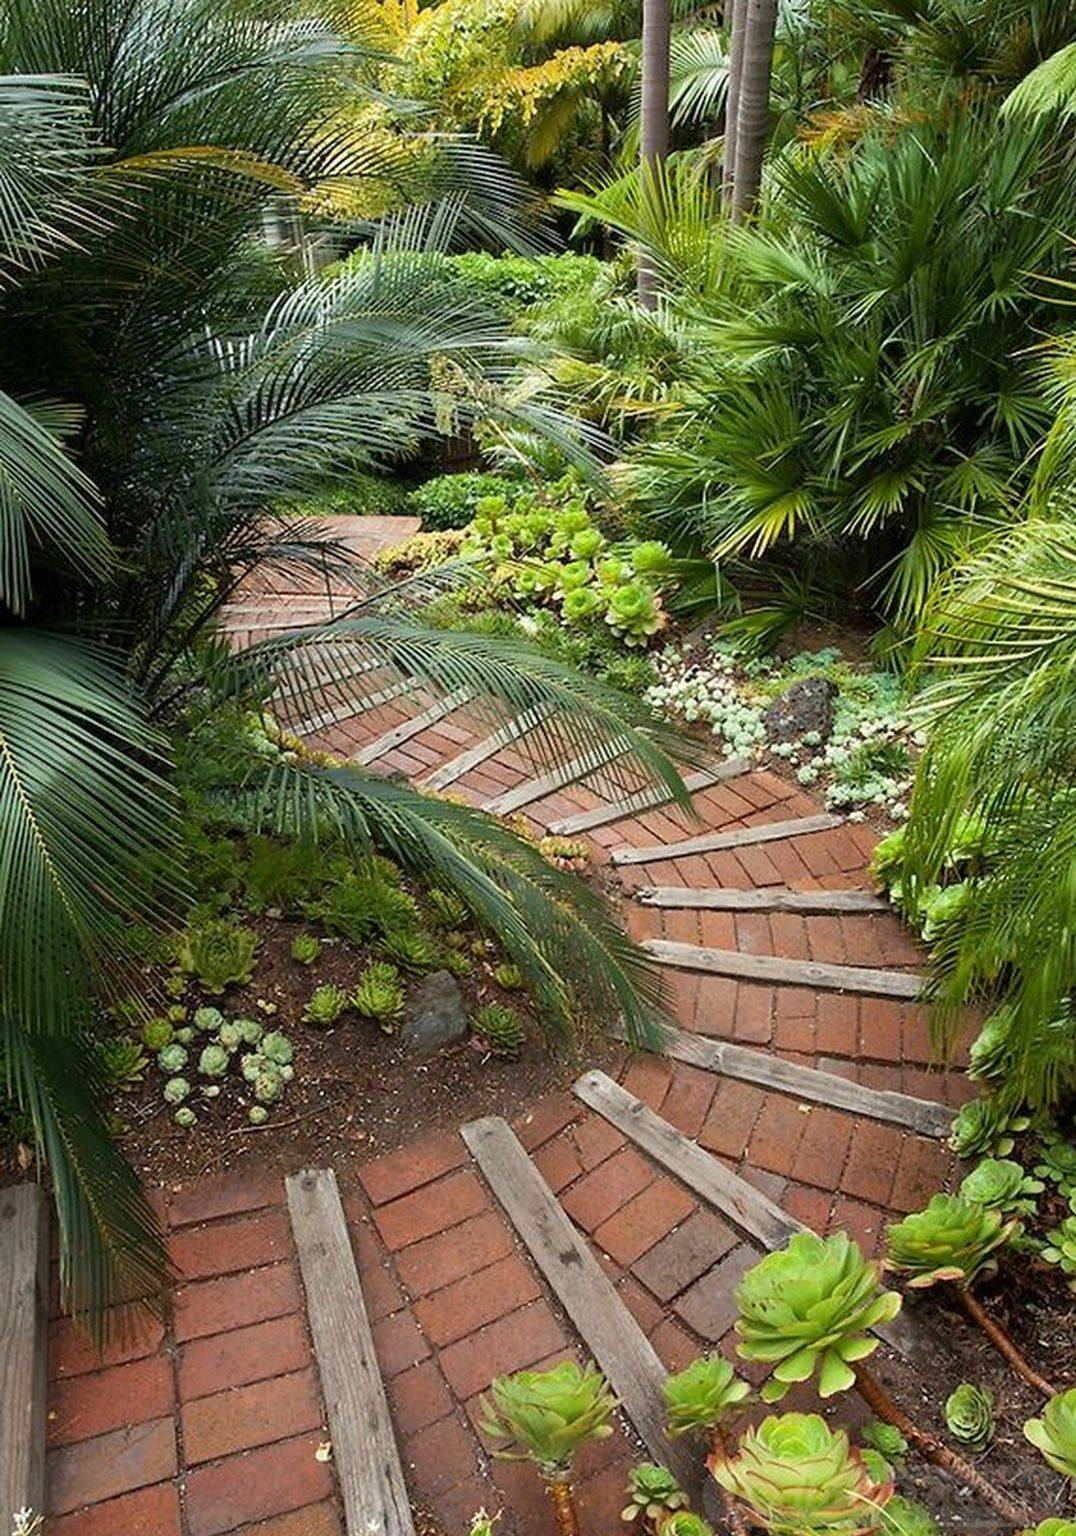 25 Perfect Tropical Garden Design Ideas - Your Staycation ...